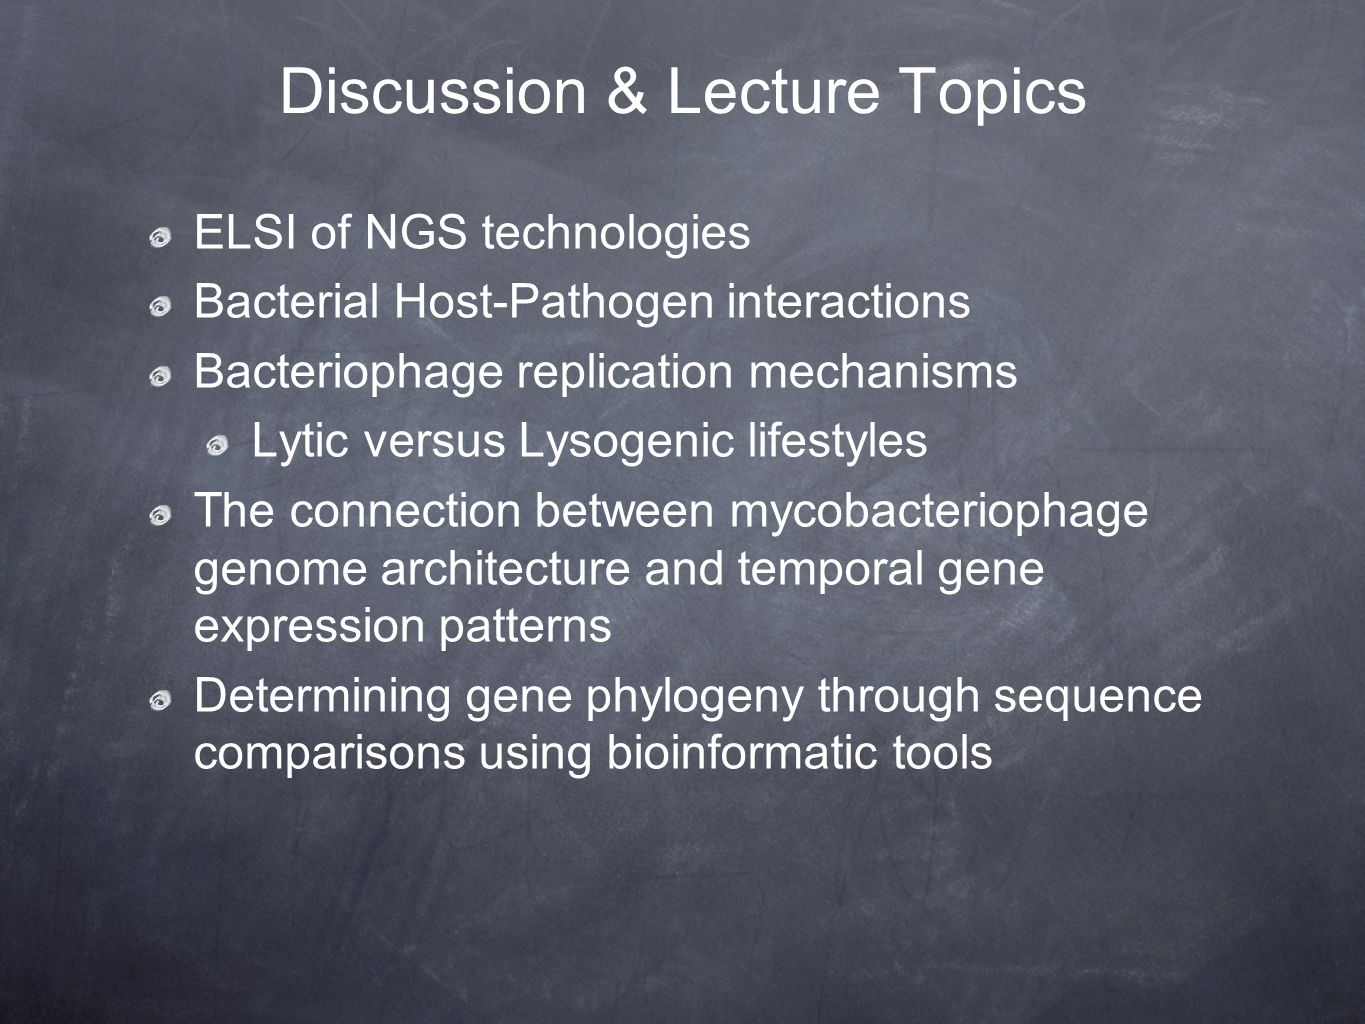 Discussion & Lecture Topics ELSI of NGS technologies Bacterial Host-Pathogen interactions Bacteriophage replication mechanisms Lytic versus Lysogenic lifestyles The connection between mycobacteriophage genome architecture and temporal gene expression patterns Determining gene phylogeny through sequence comparisons using bioinformatic tools